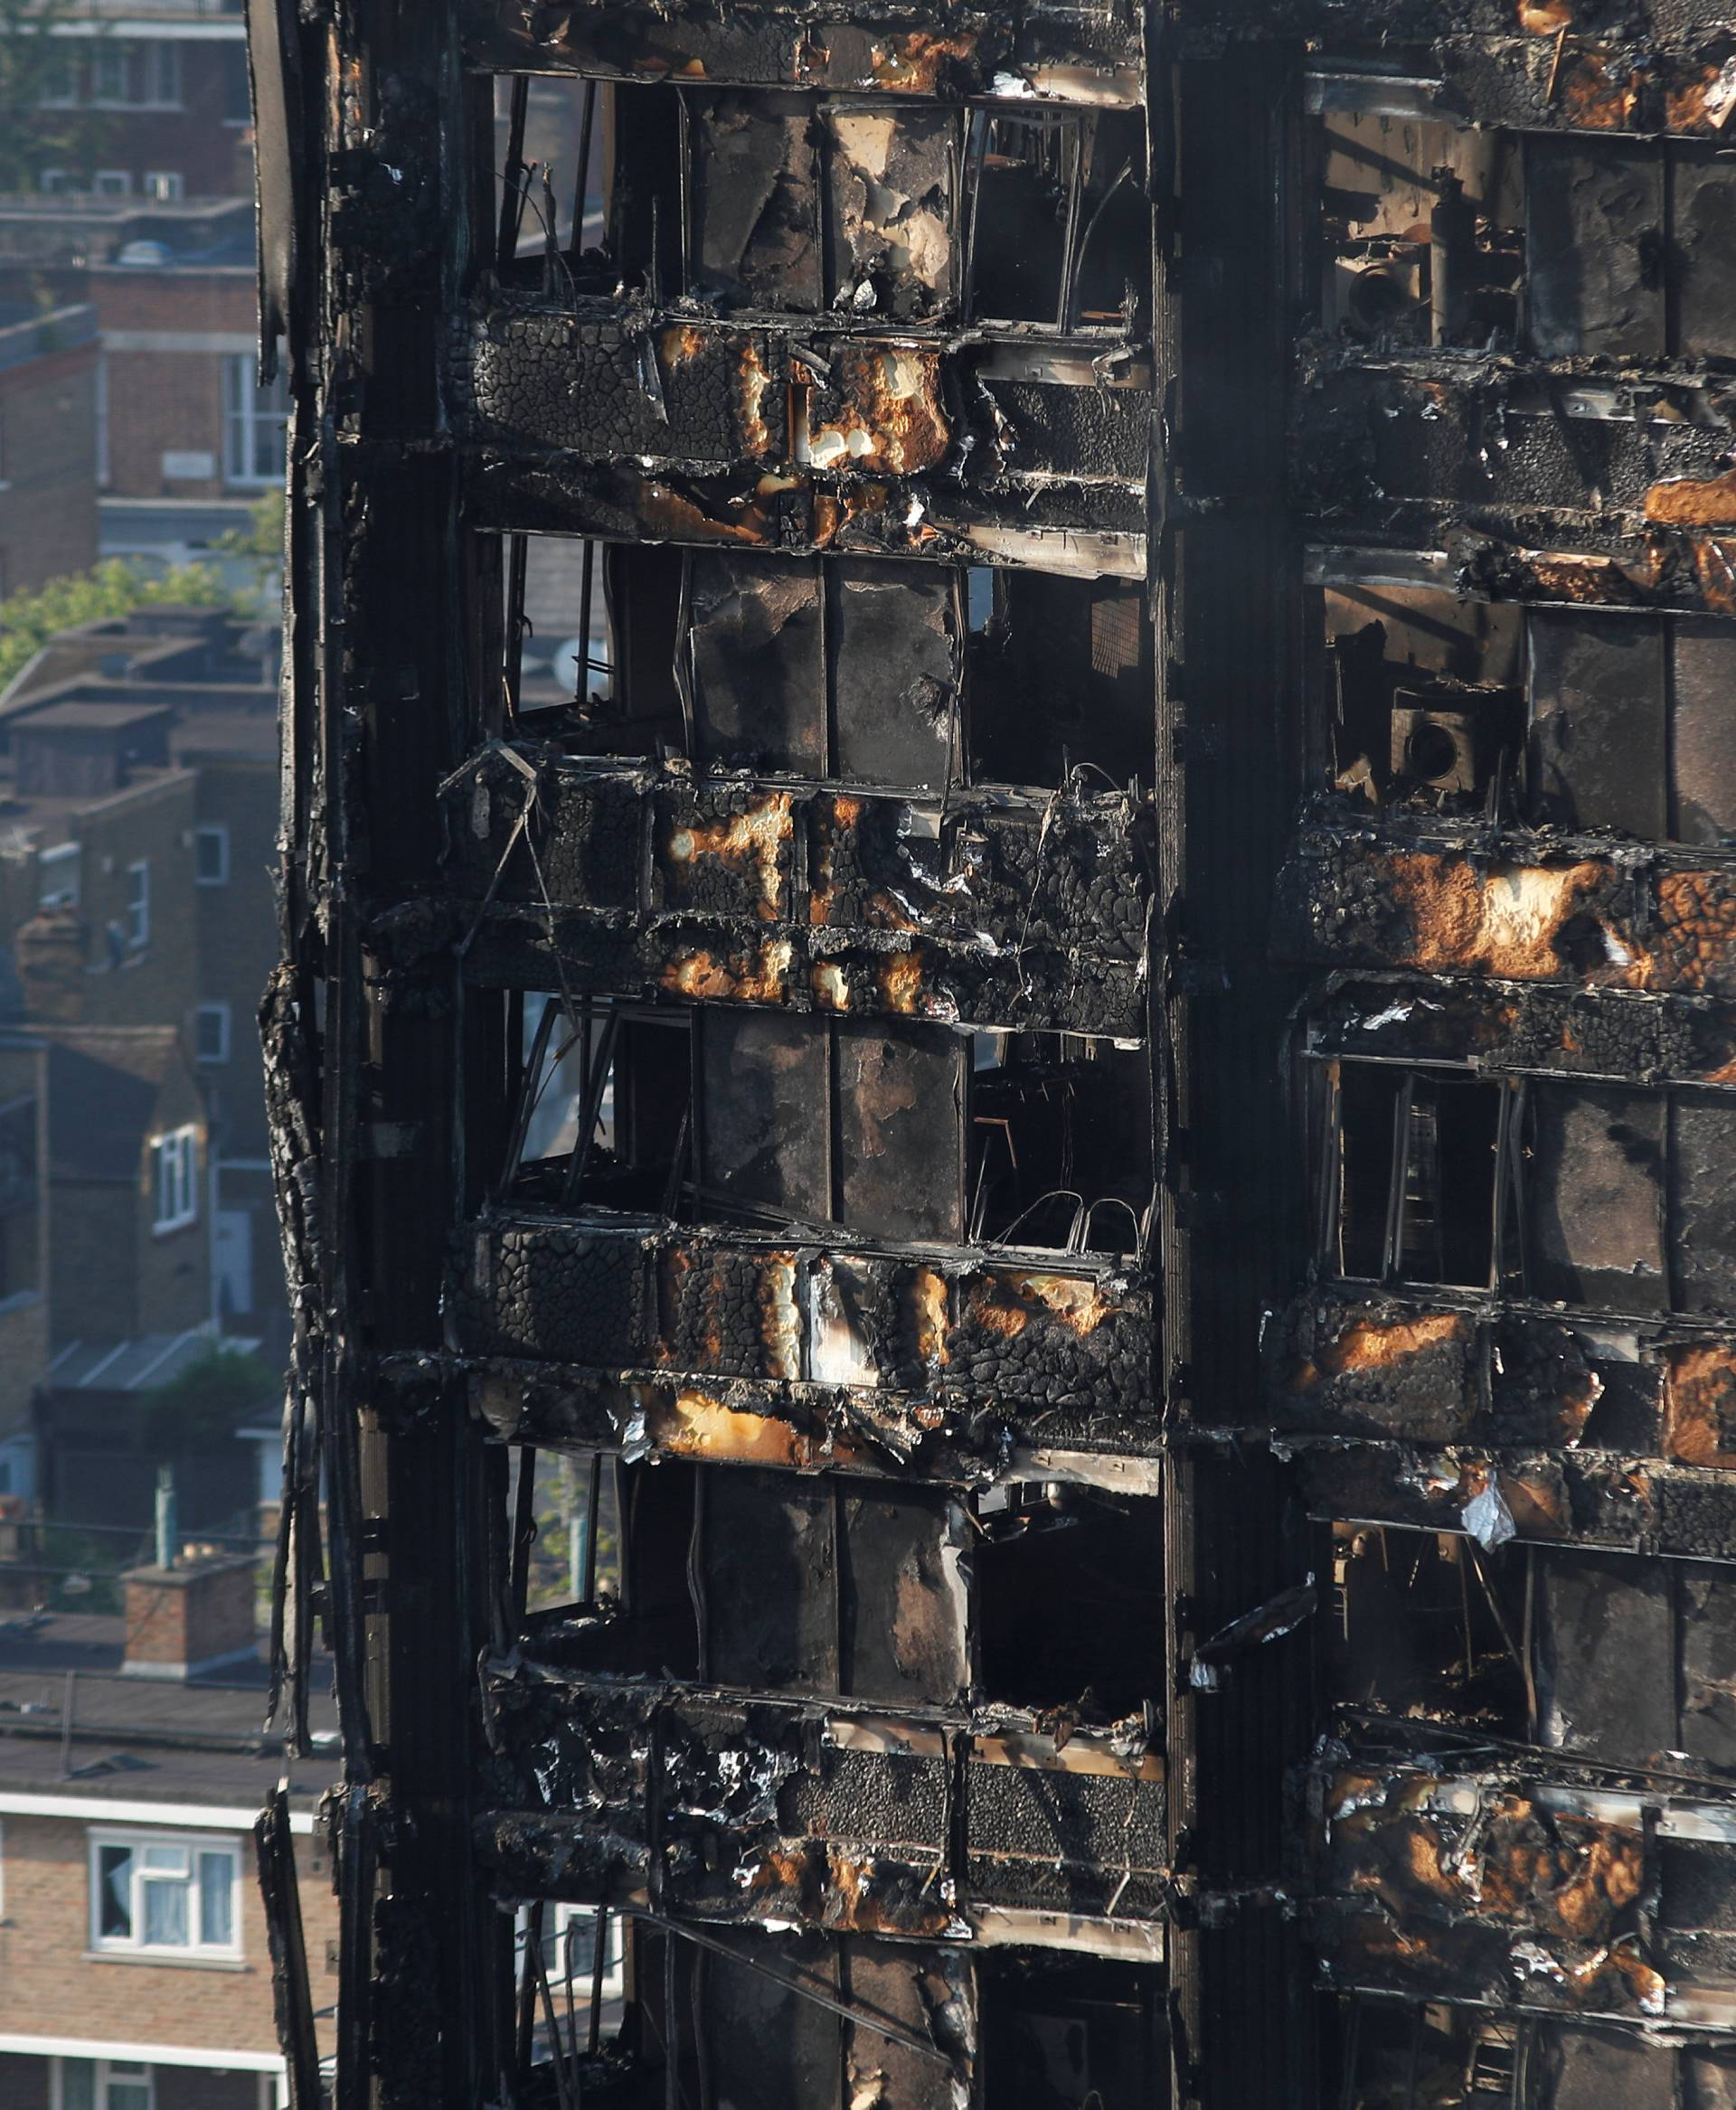 Damage is seen to a tower block which was destroyed in a fire disaster, in north Kensington, West London